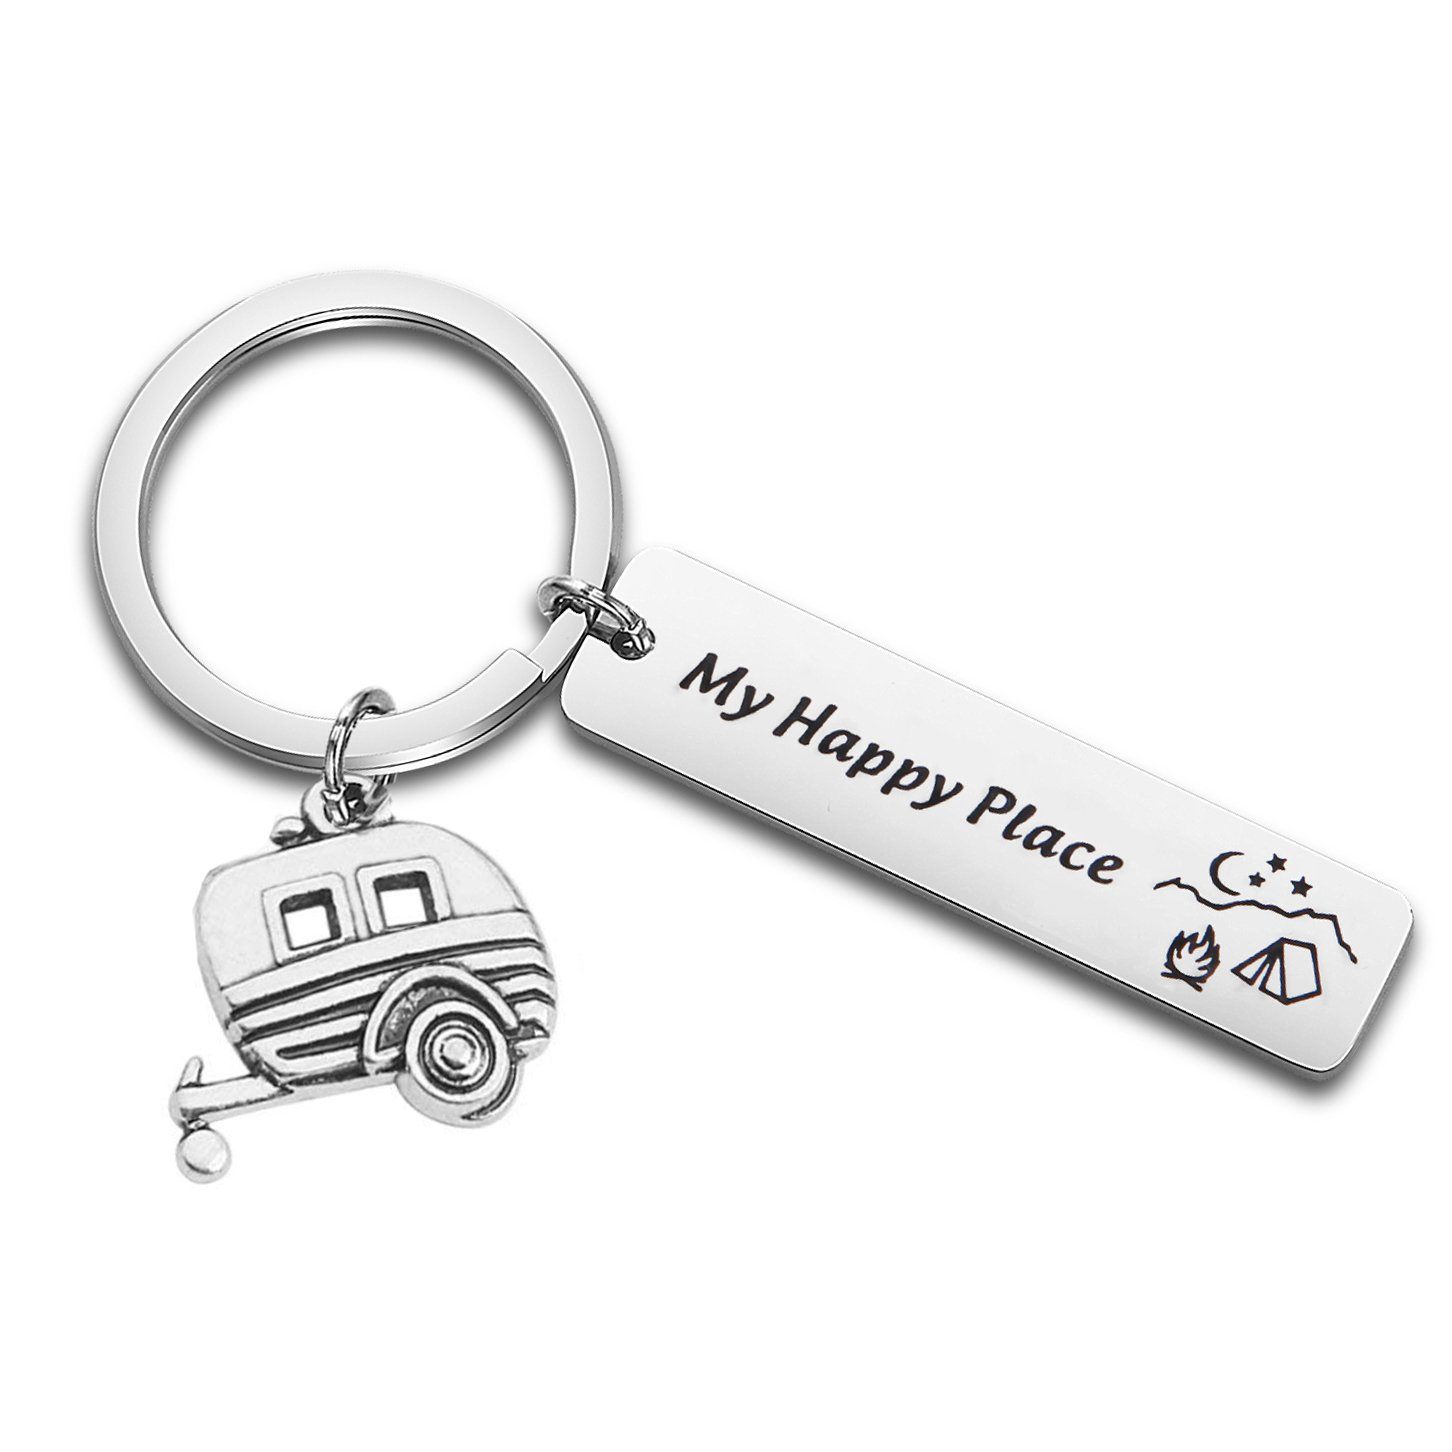 QIIER Camp Keychain My Happy Place Camping Keychain Camp Jewelry RV Camper Gift for Campers, Traveler (Silver)